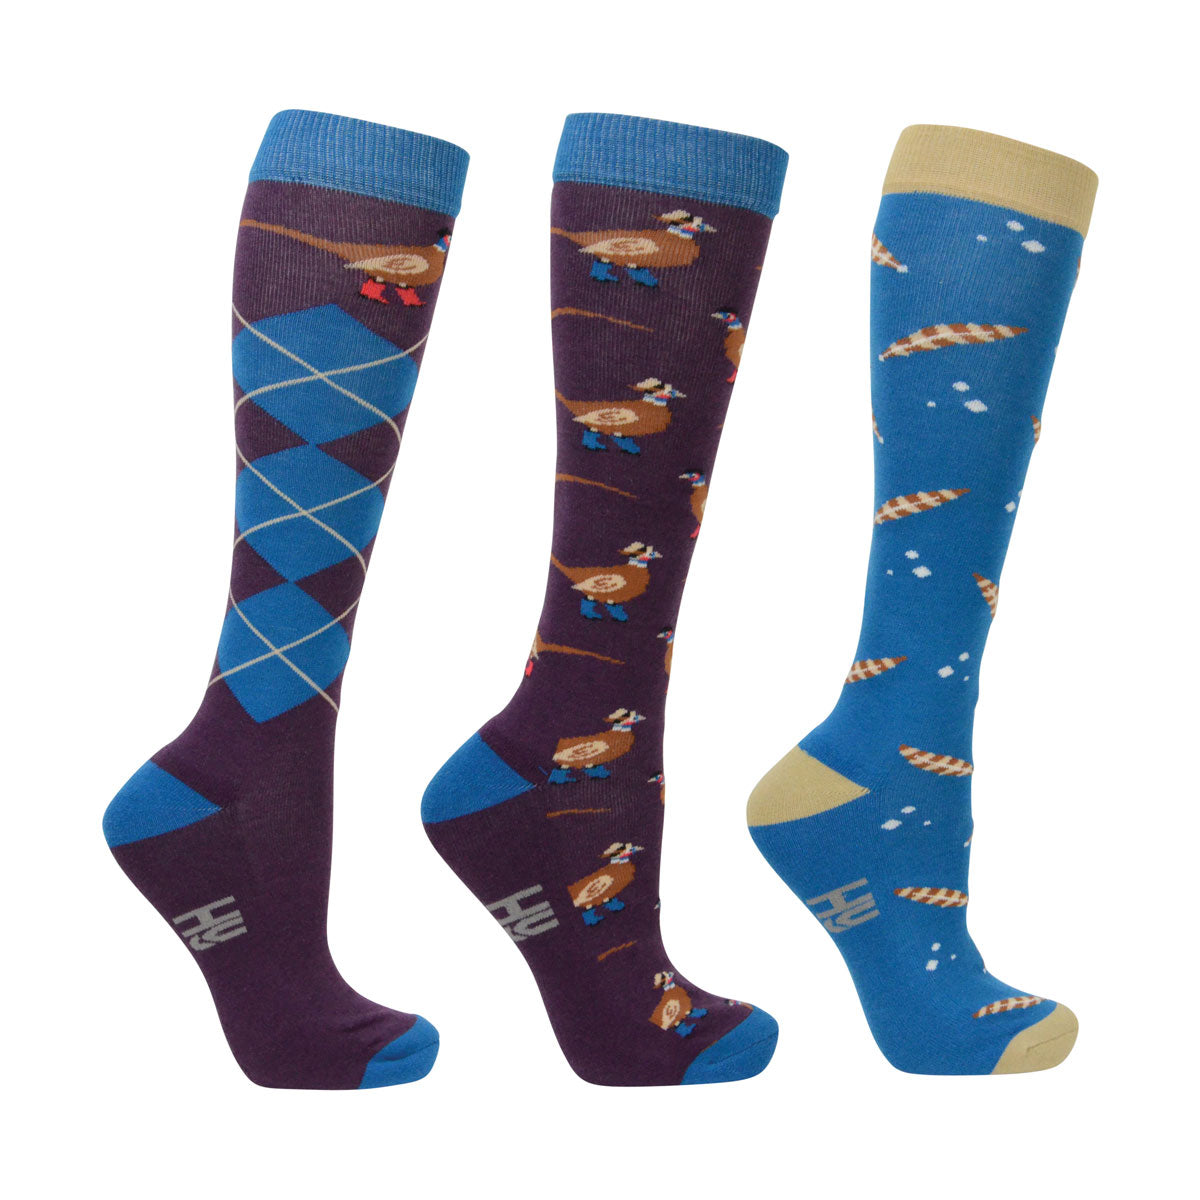 Hy Patrick the Phesant Socks (pack of 3)